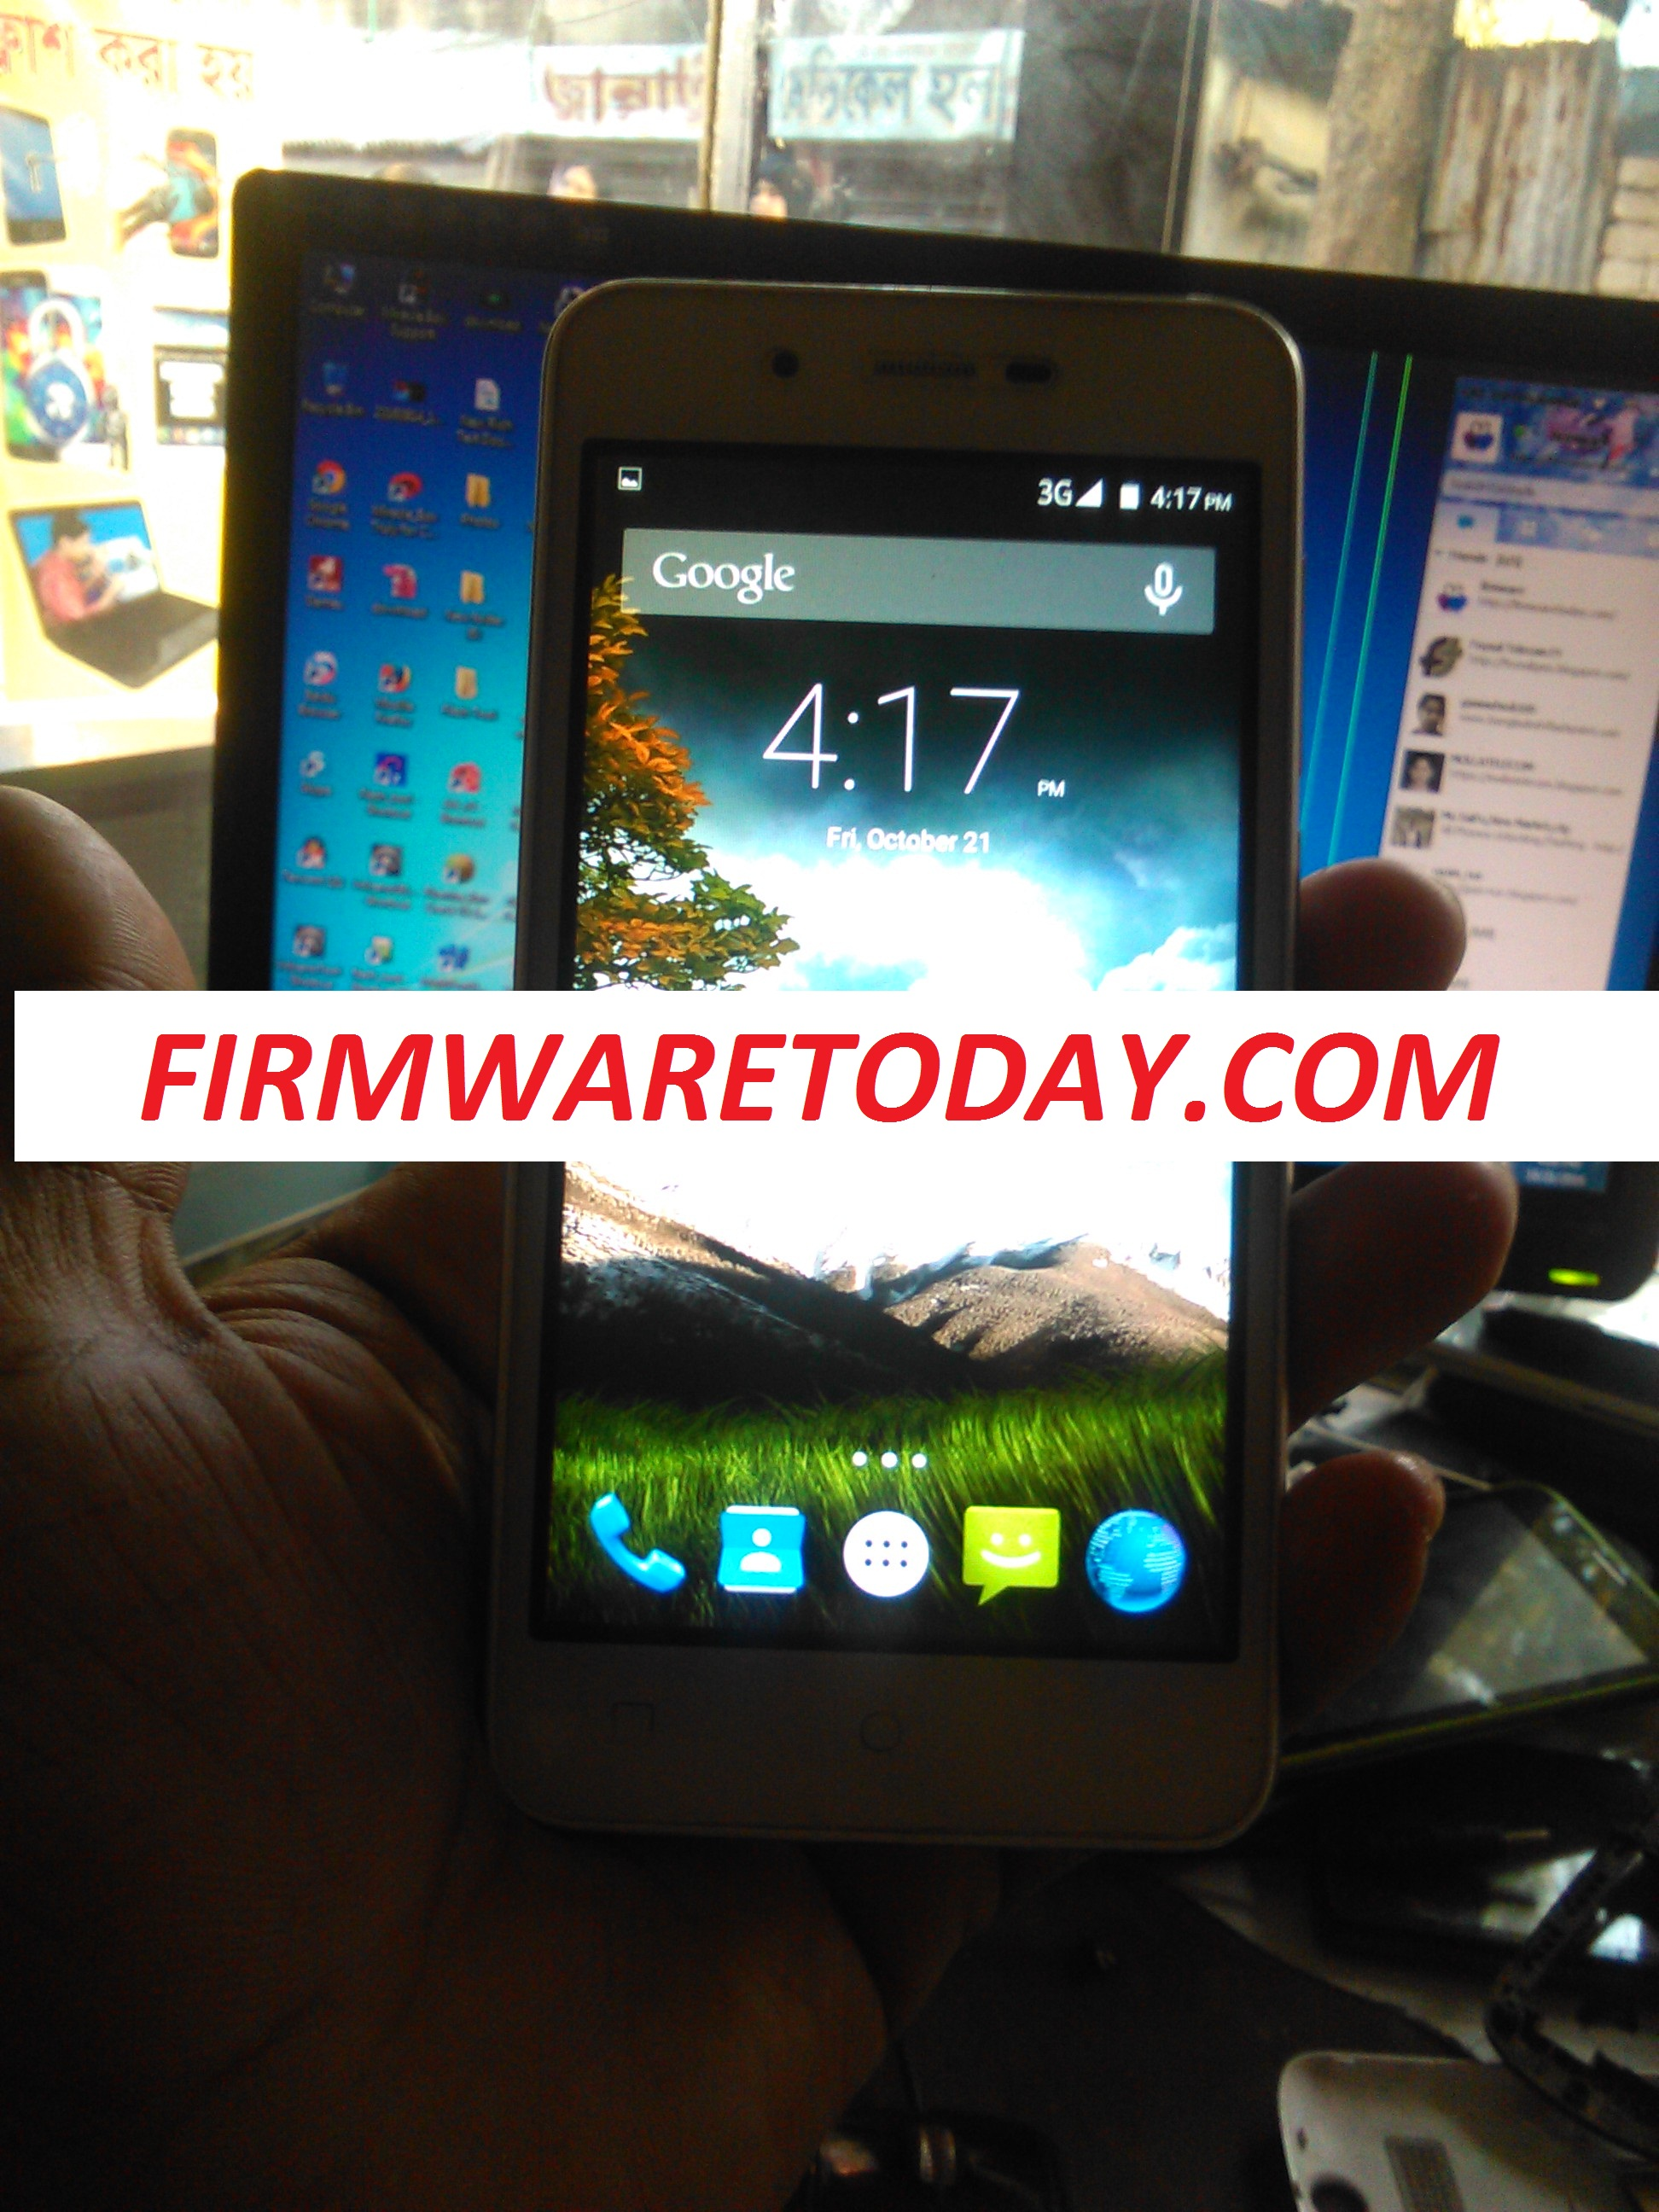 SYMPHONY V80 OFFICIAL FIRMWARE WITHOUT PASS (V80_V01.16_V1.0_MT6582_5.0_) UPDATE VERSION 2000%TESTEDBY FIRMWARETODAY.COM